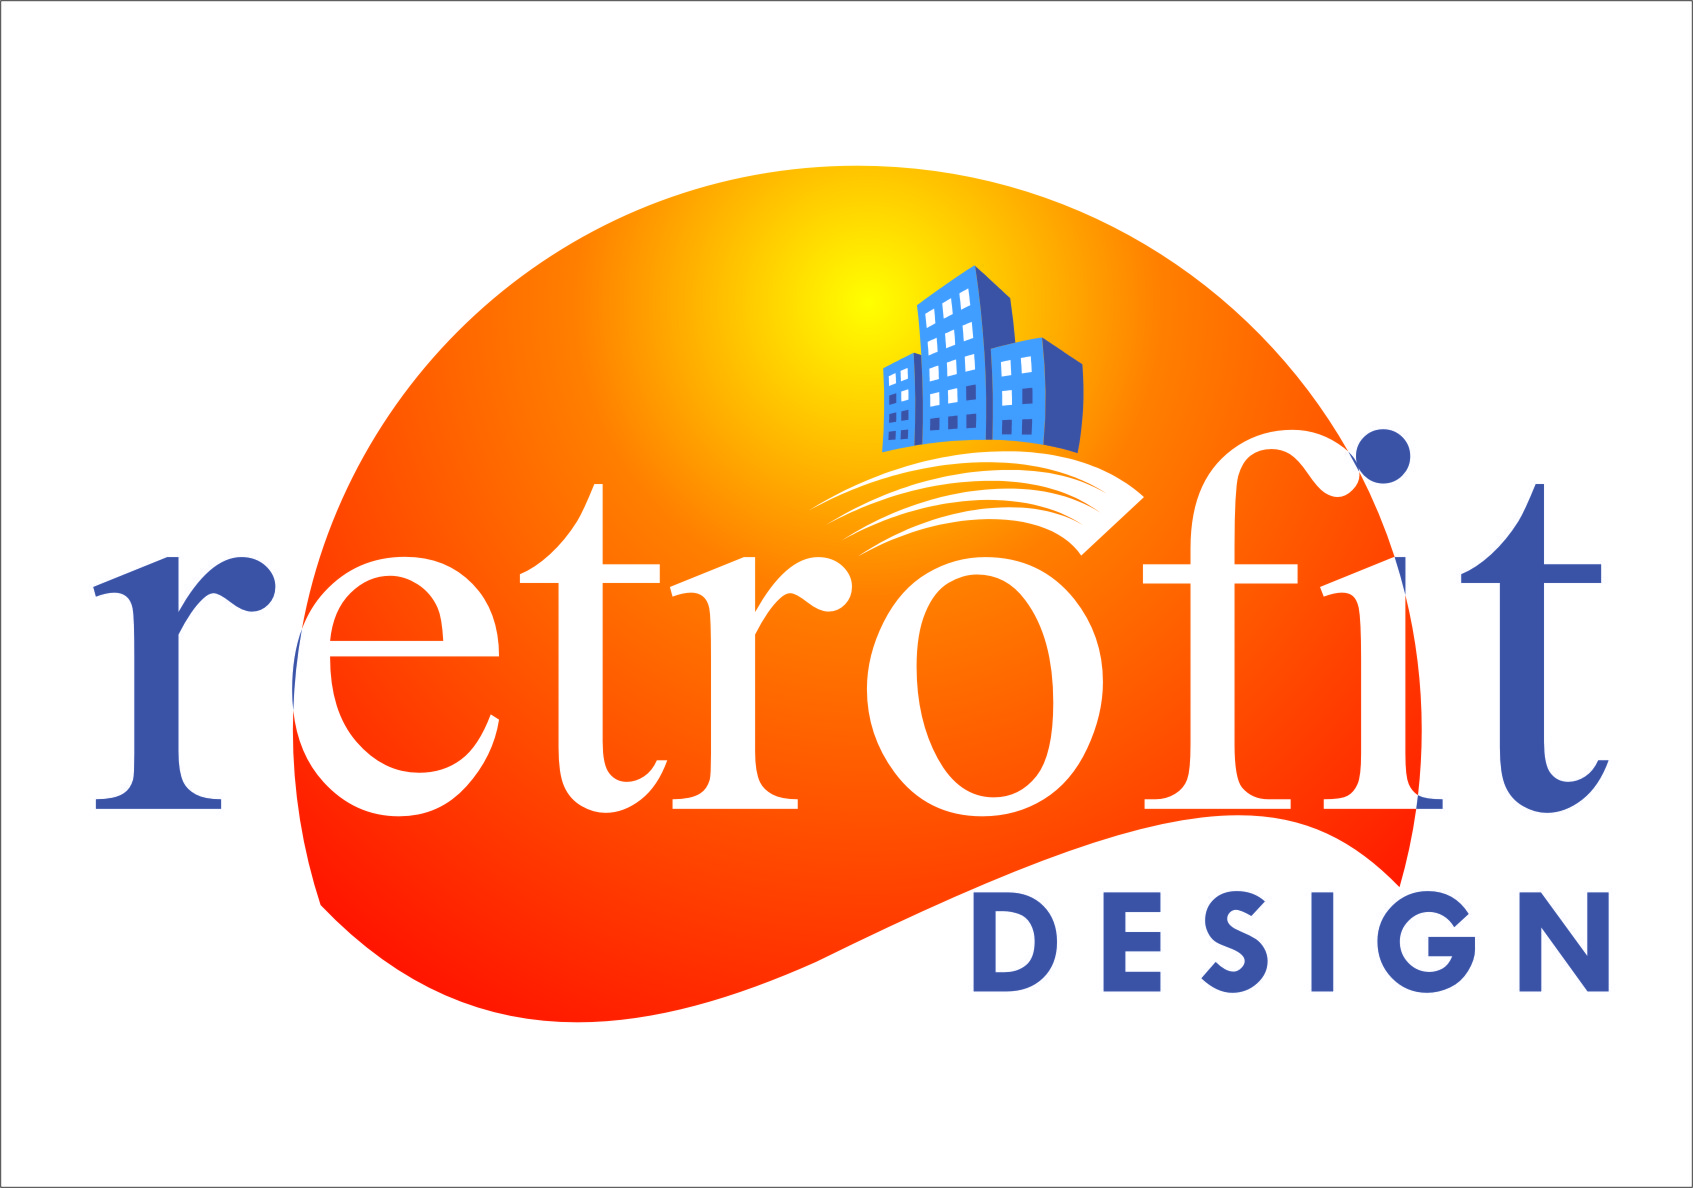 Logo Design by Ngepet_art - Entry No. 149 in the Logo Design Contest Inspiring Logo Design for retrofit design.